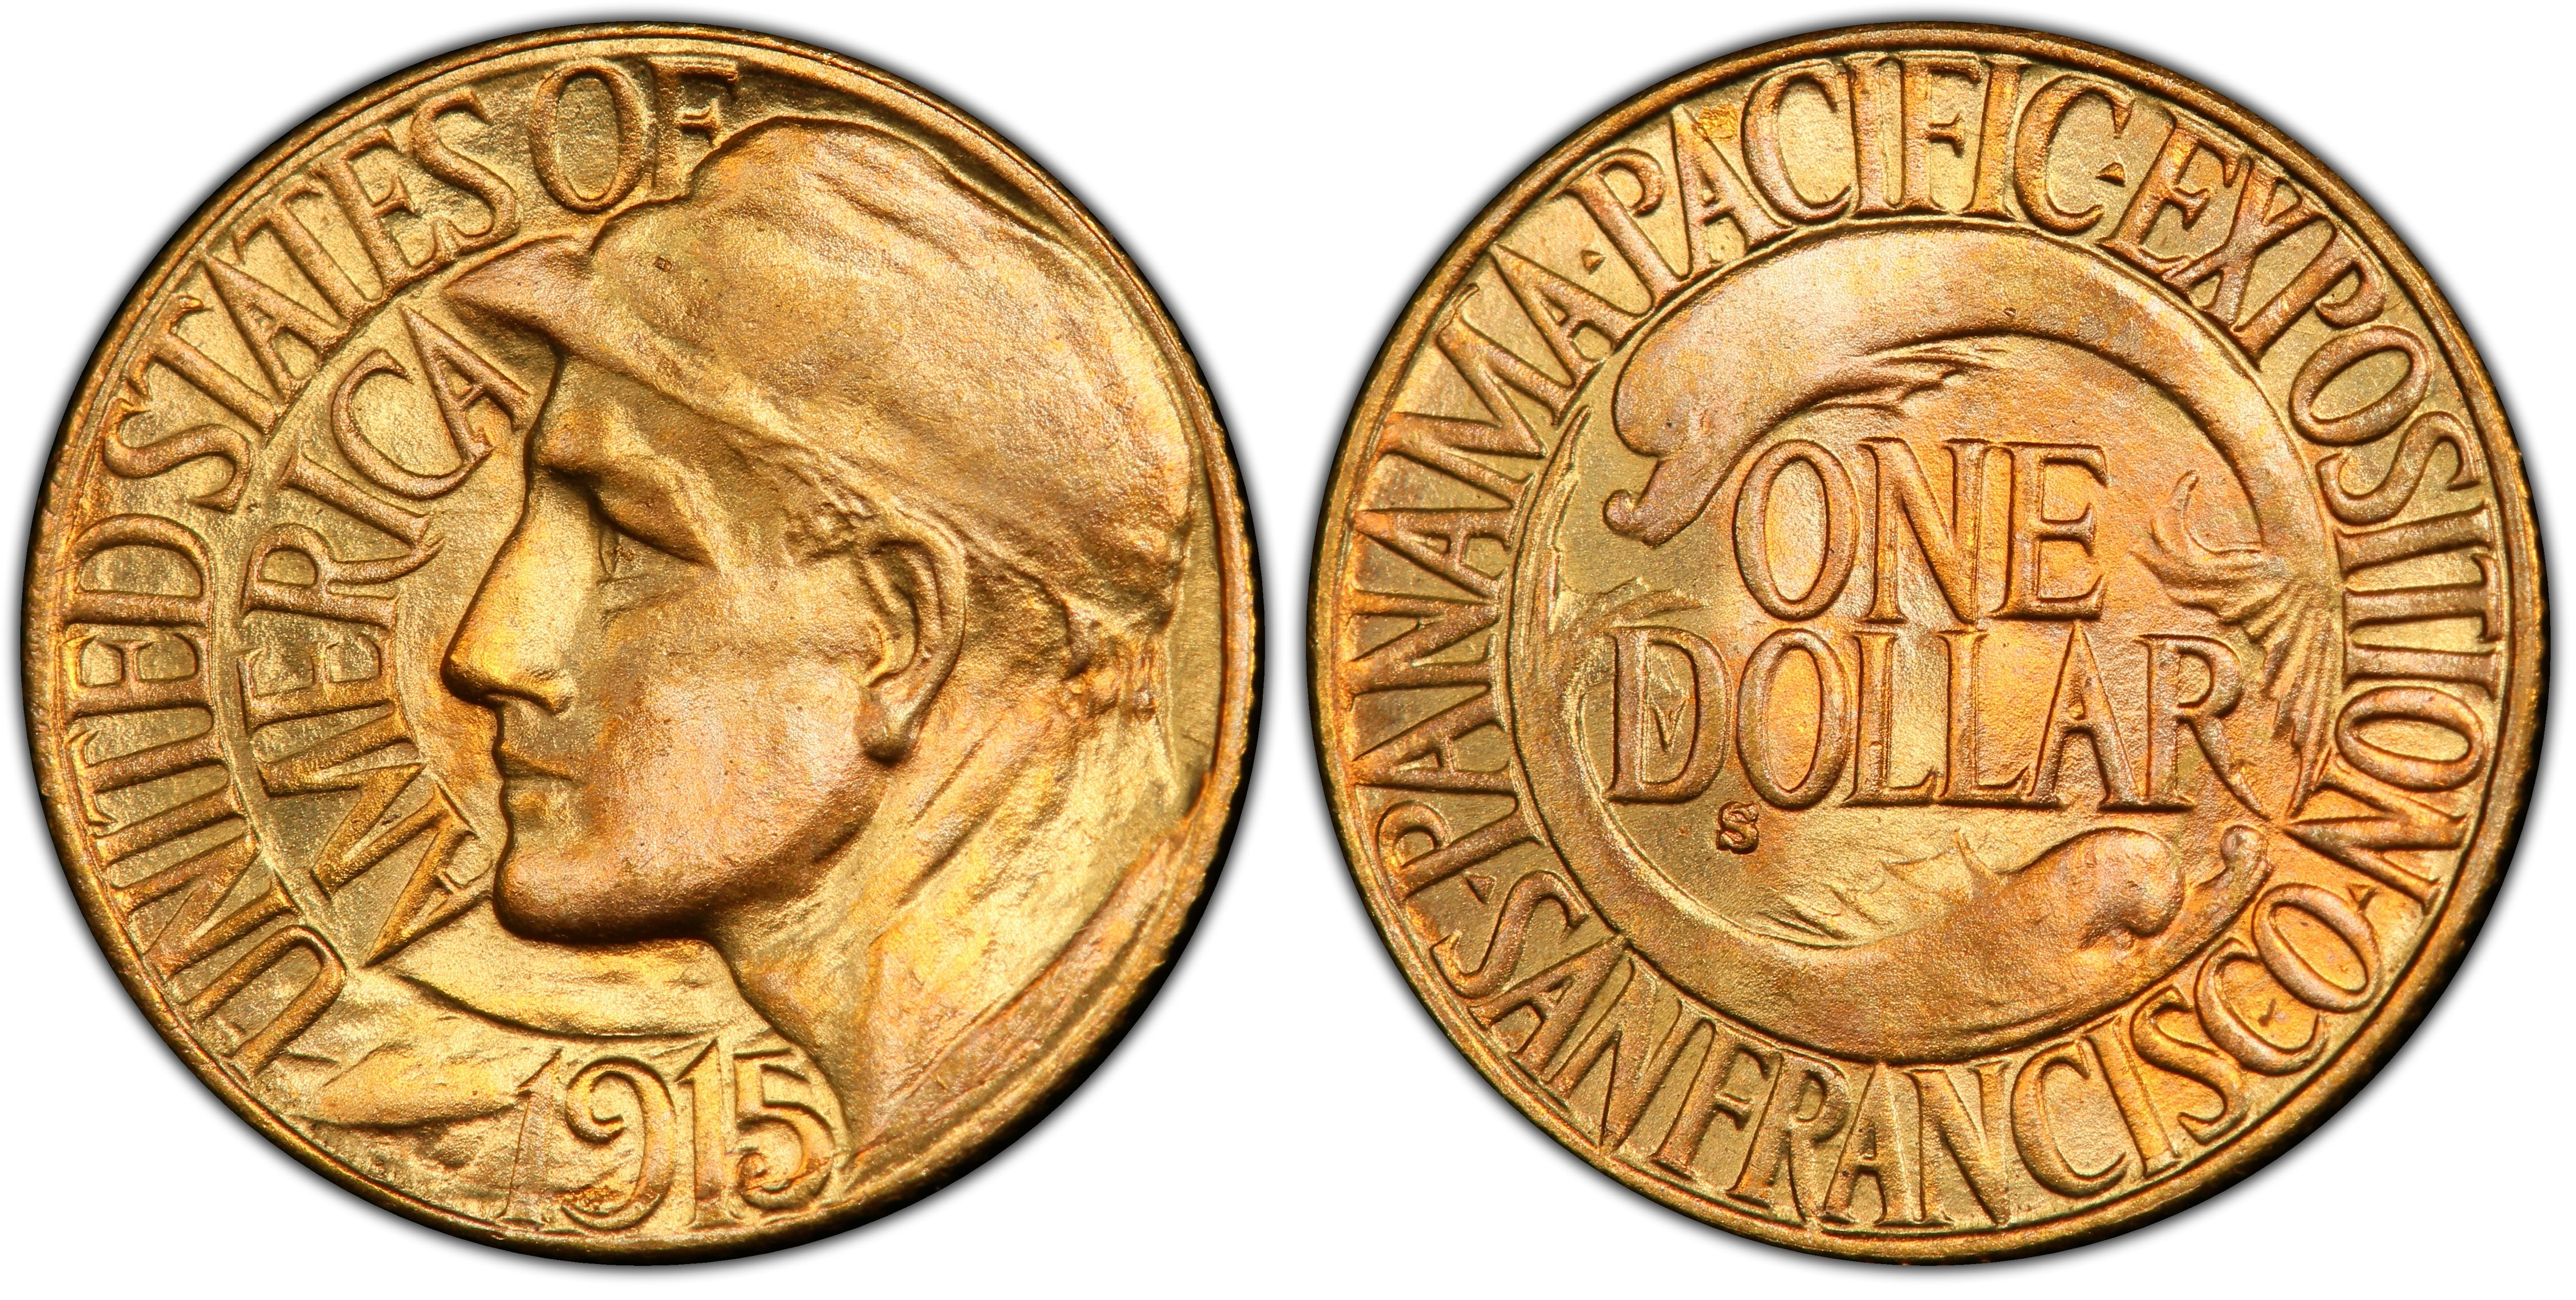 Panama-Pacific International Exposition Gold Dollar Commemorative